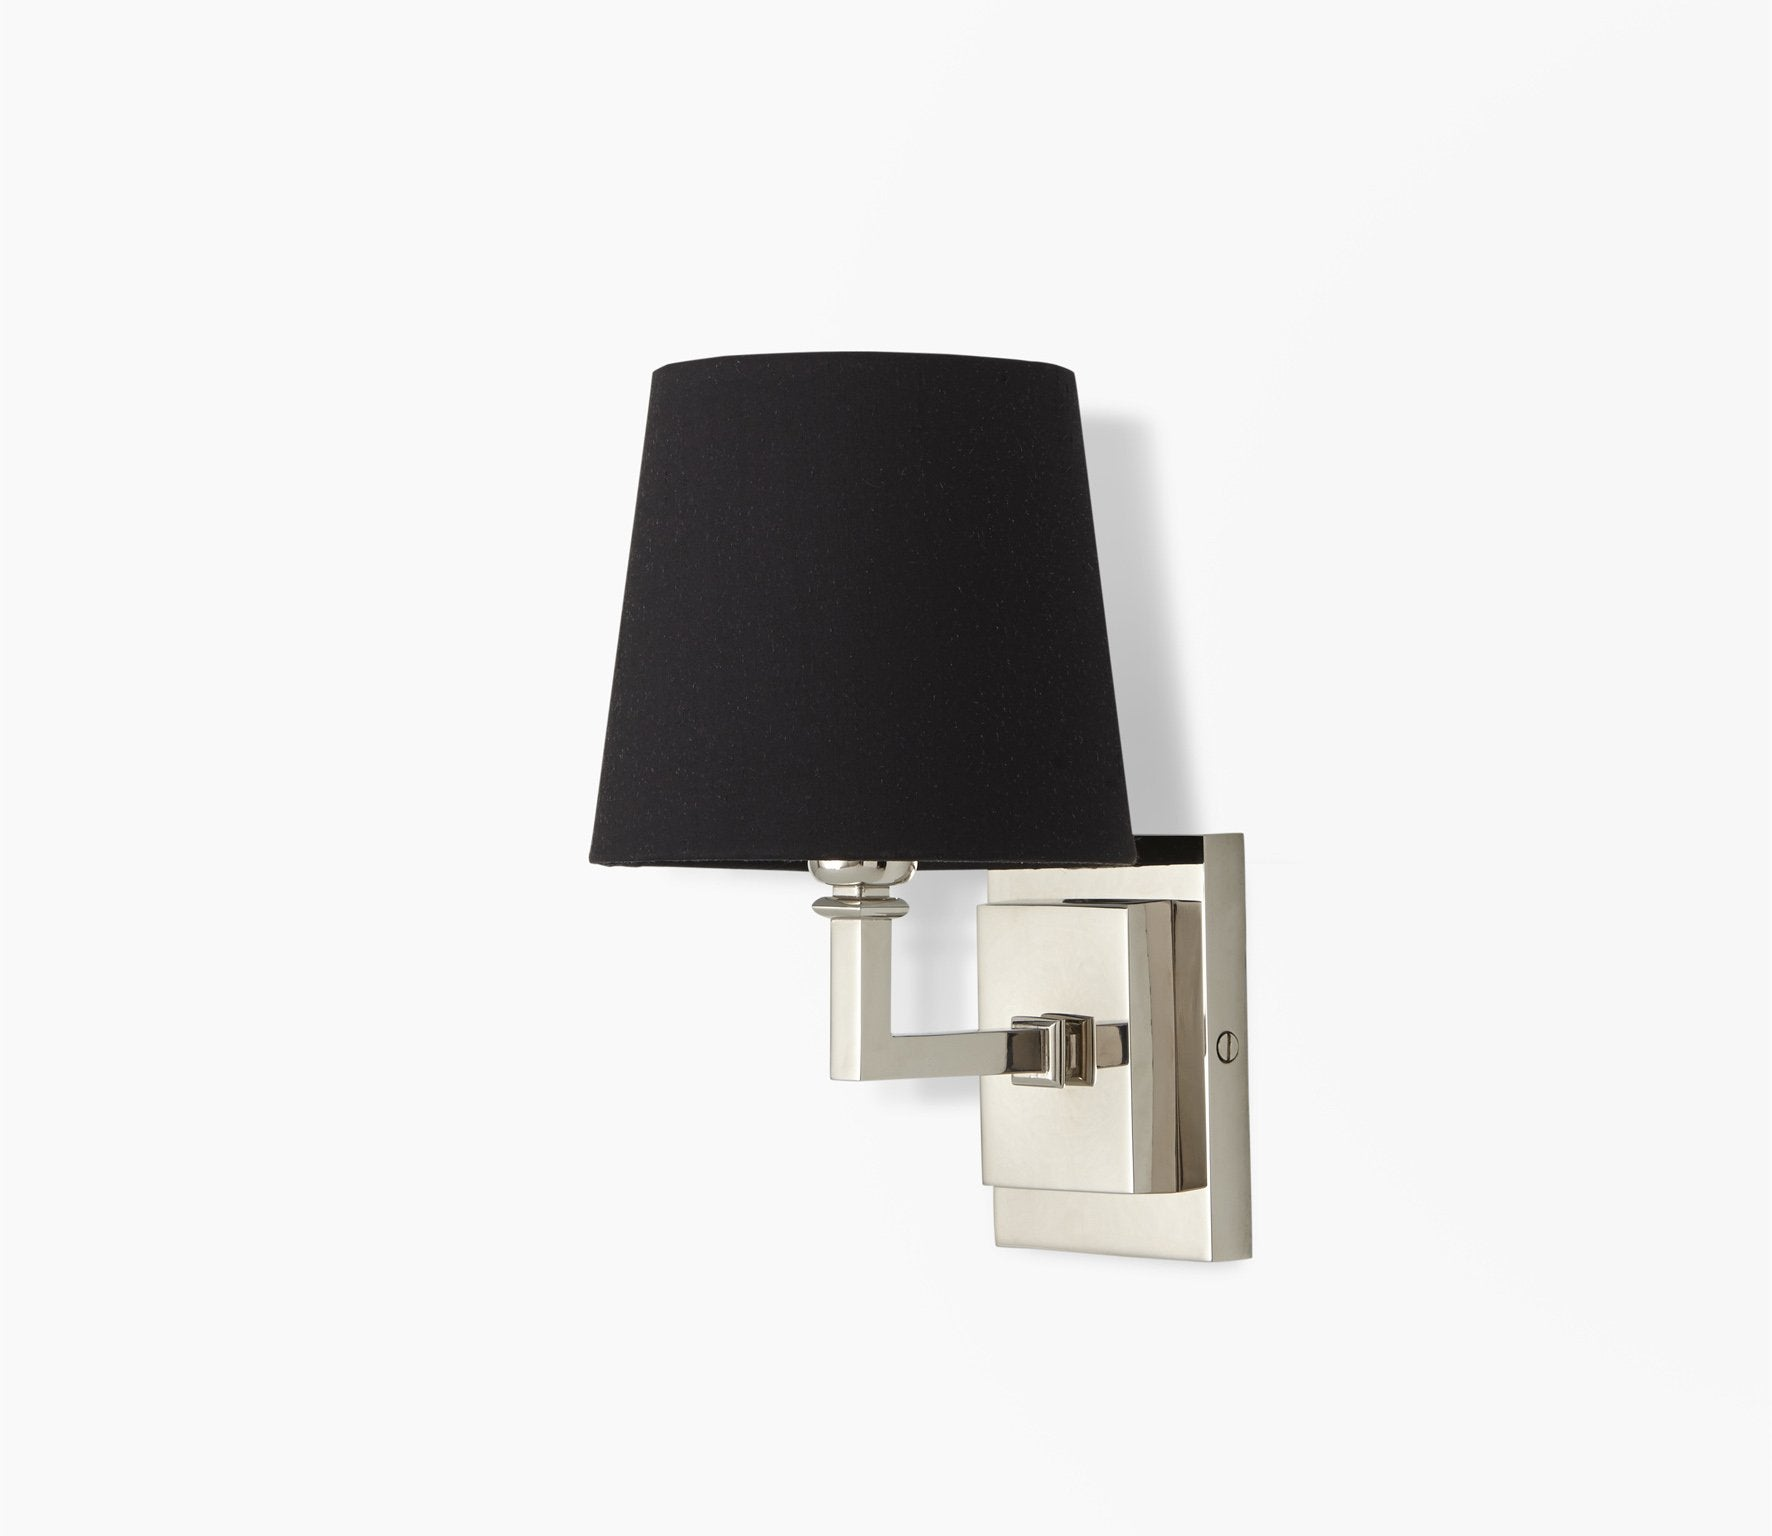 Parker Wall Light with Drum Shade Product Image 3